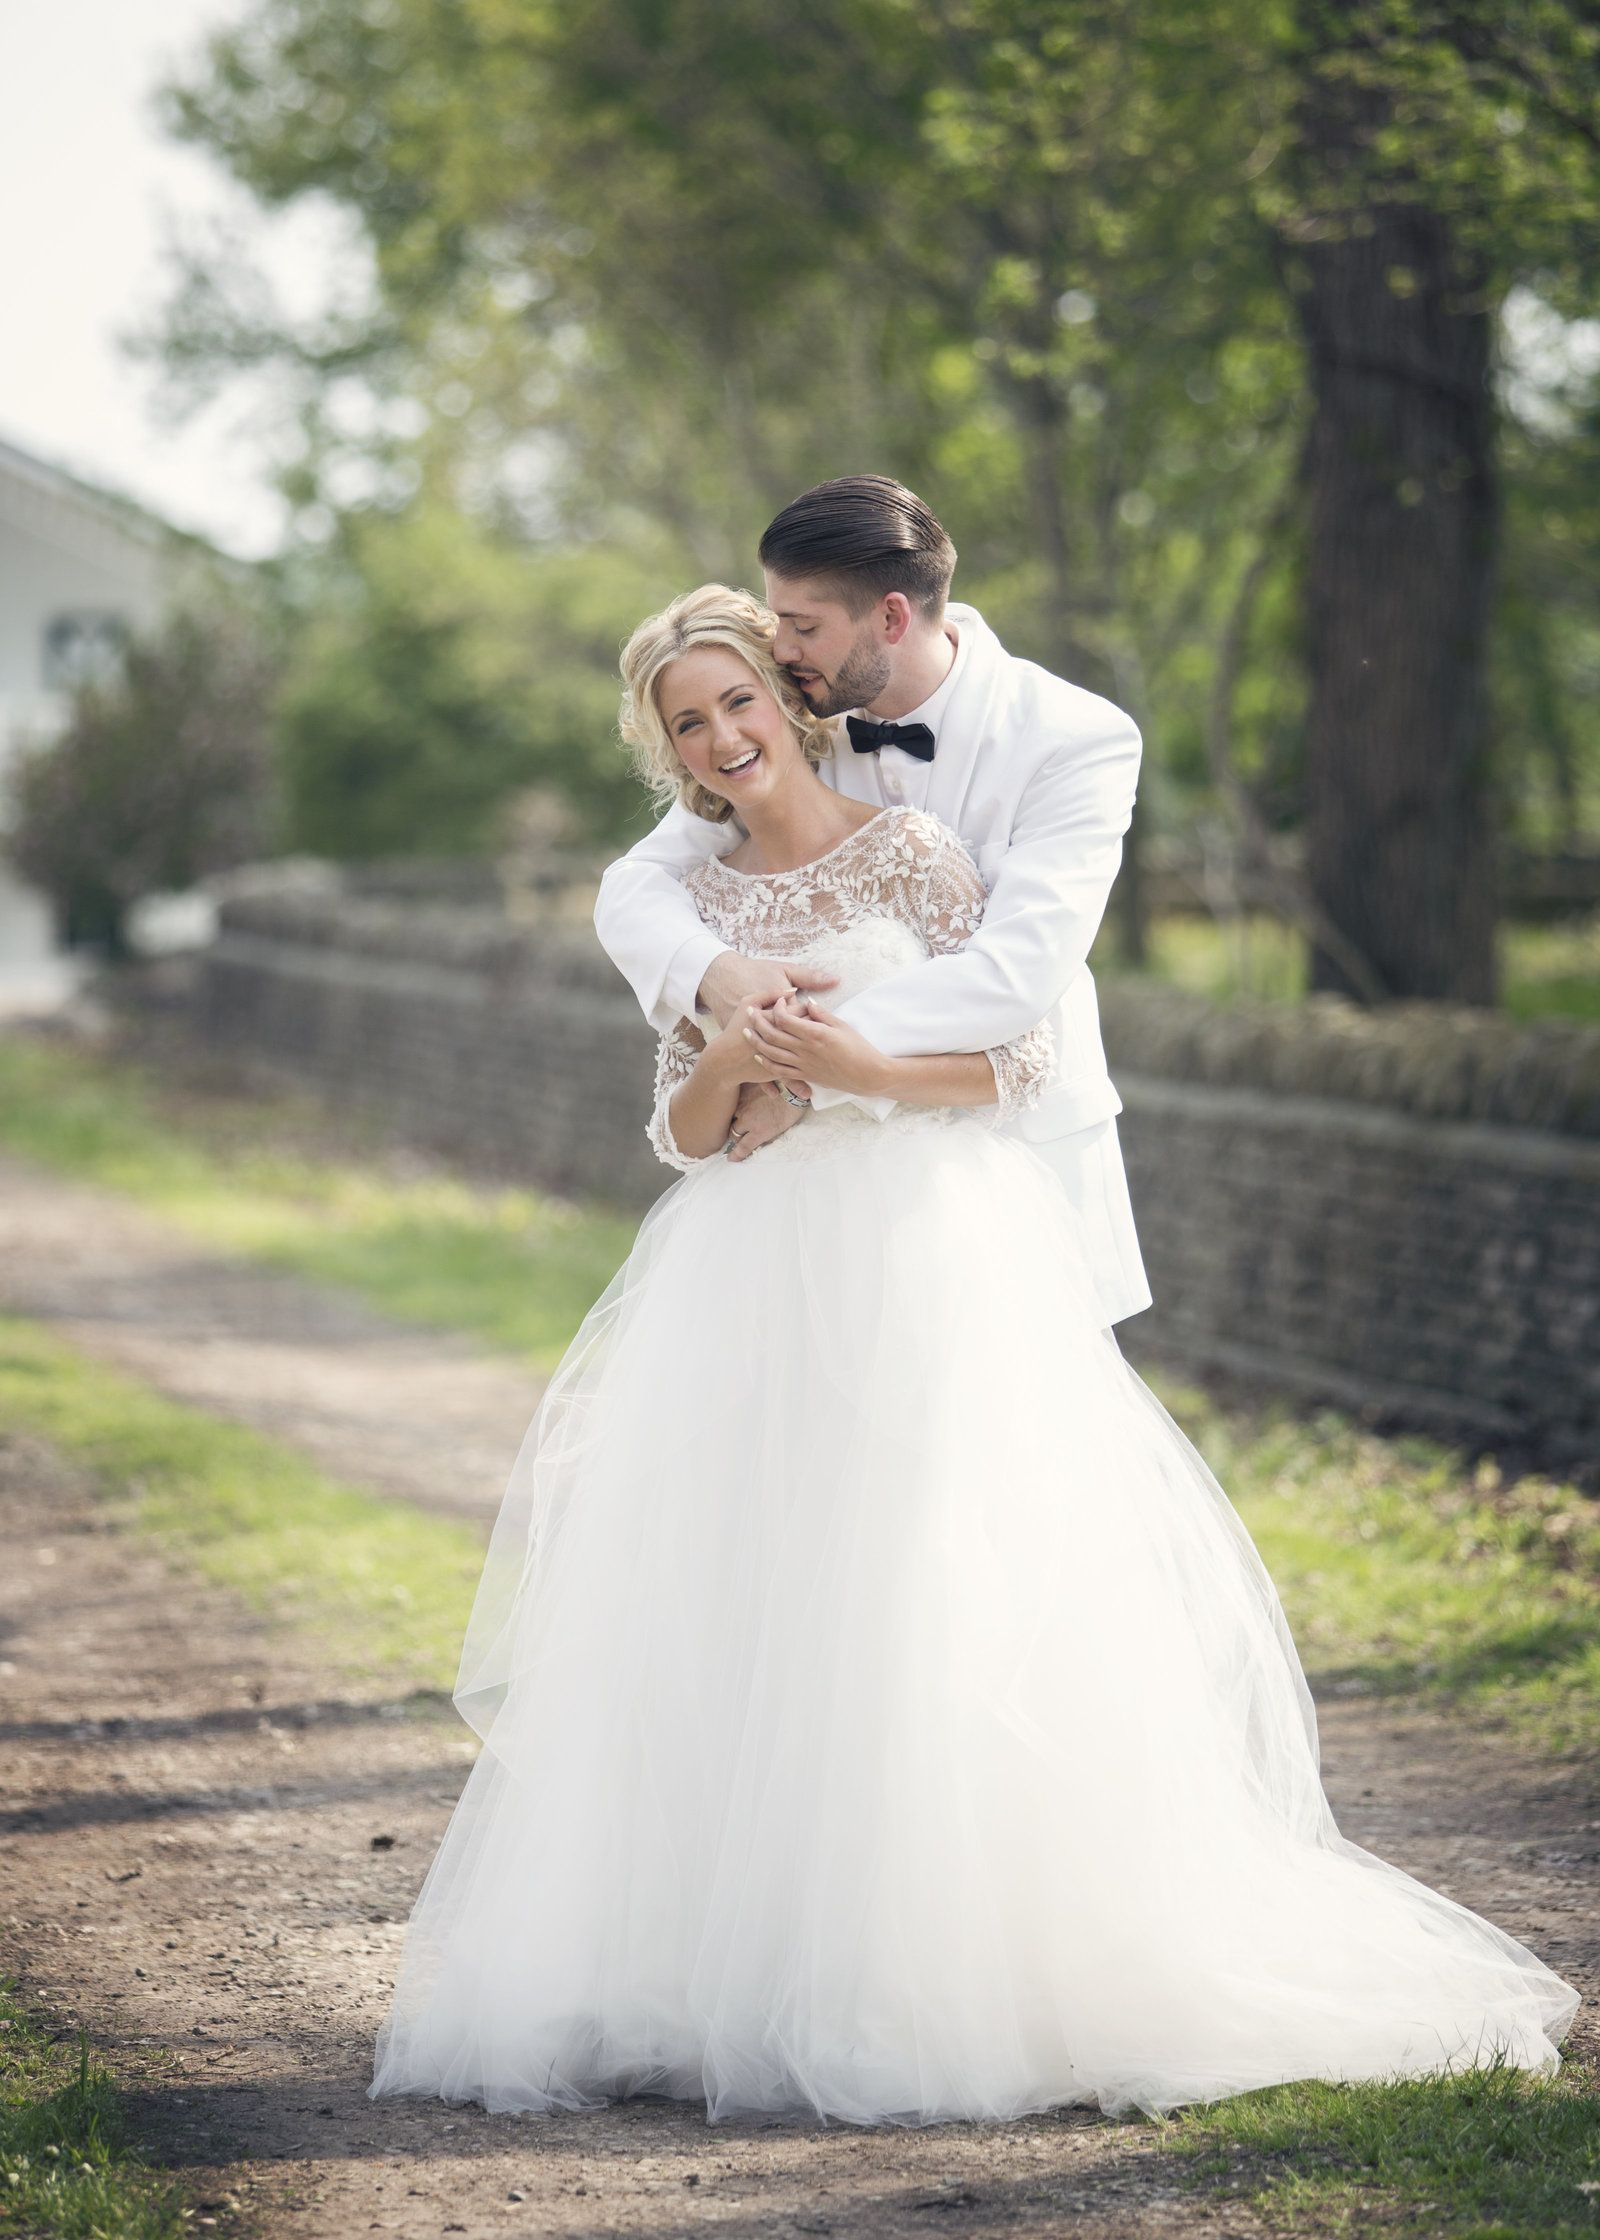 wedding picture locations akron ohio%0A Imagine It Photography   Cleveland Wedding Photographer   Wedding  Photography   Pinterest   Photography  Photographers and Cleveland